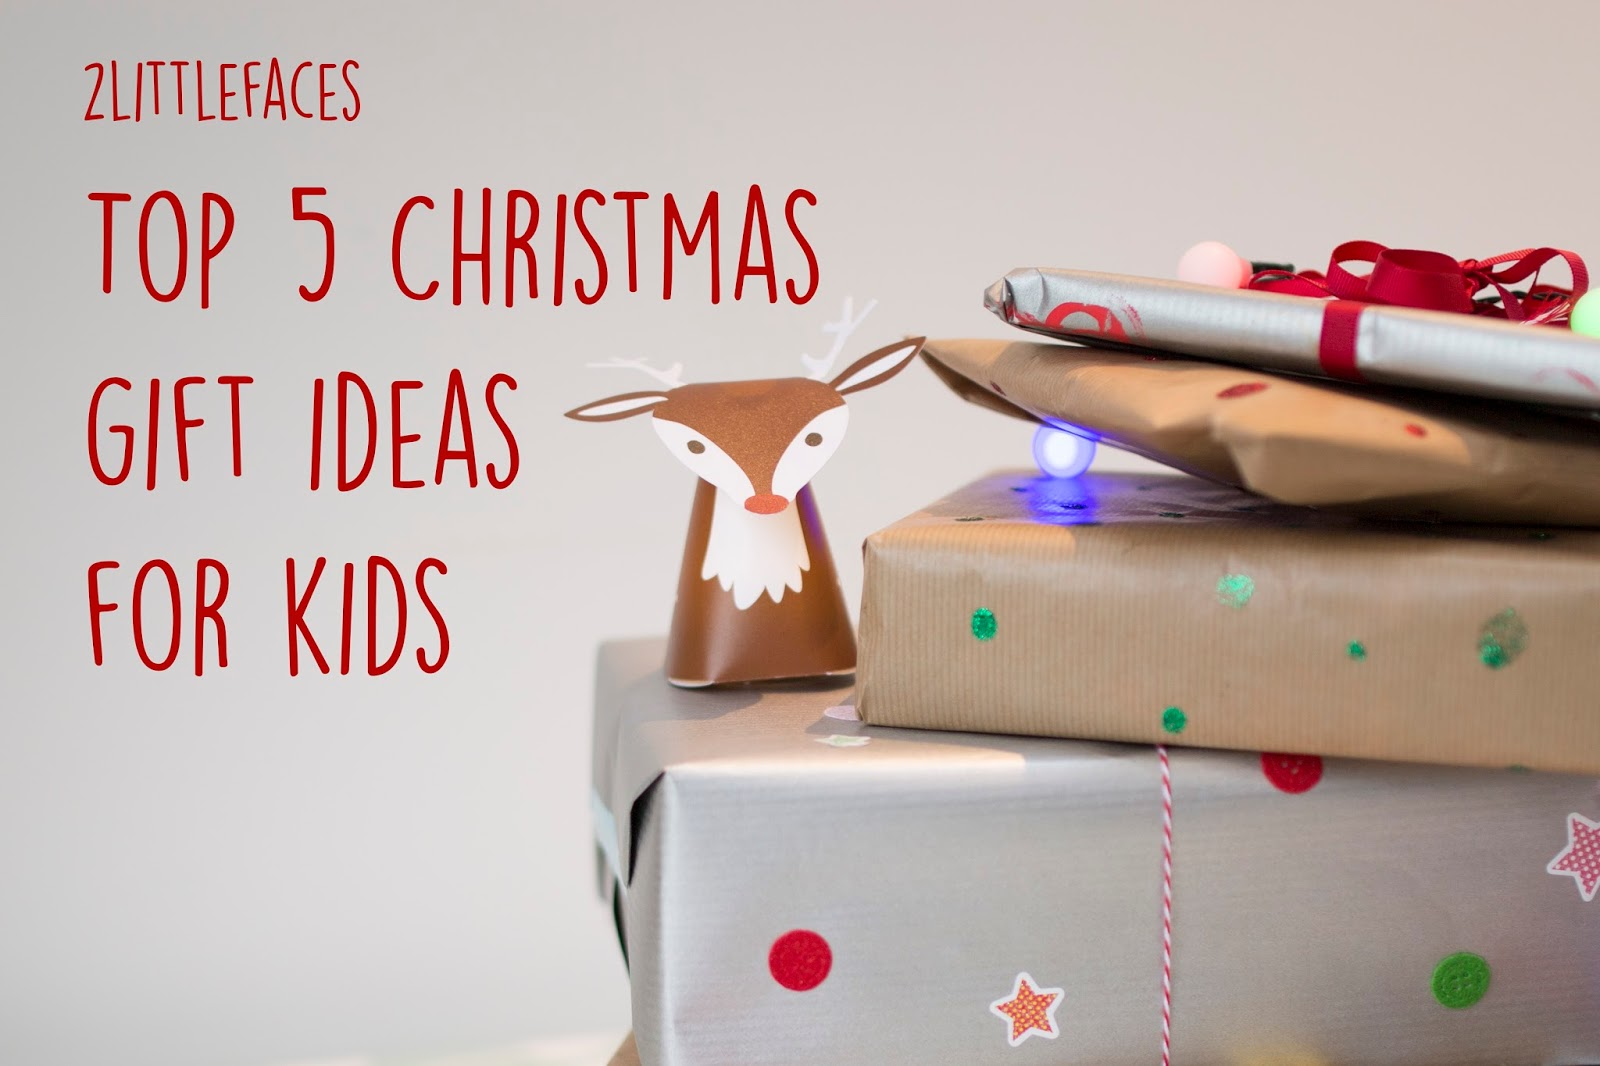 2littefaces top 5 christmas gift ideas - Top Christmas Gifts For Her 2015